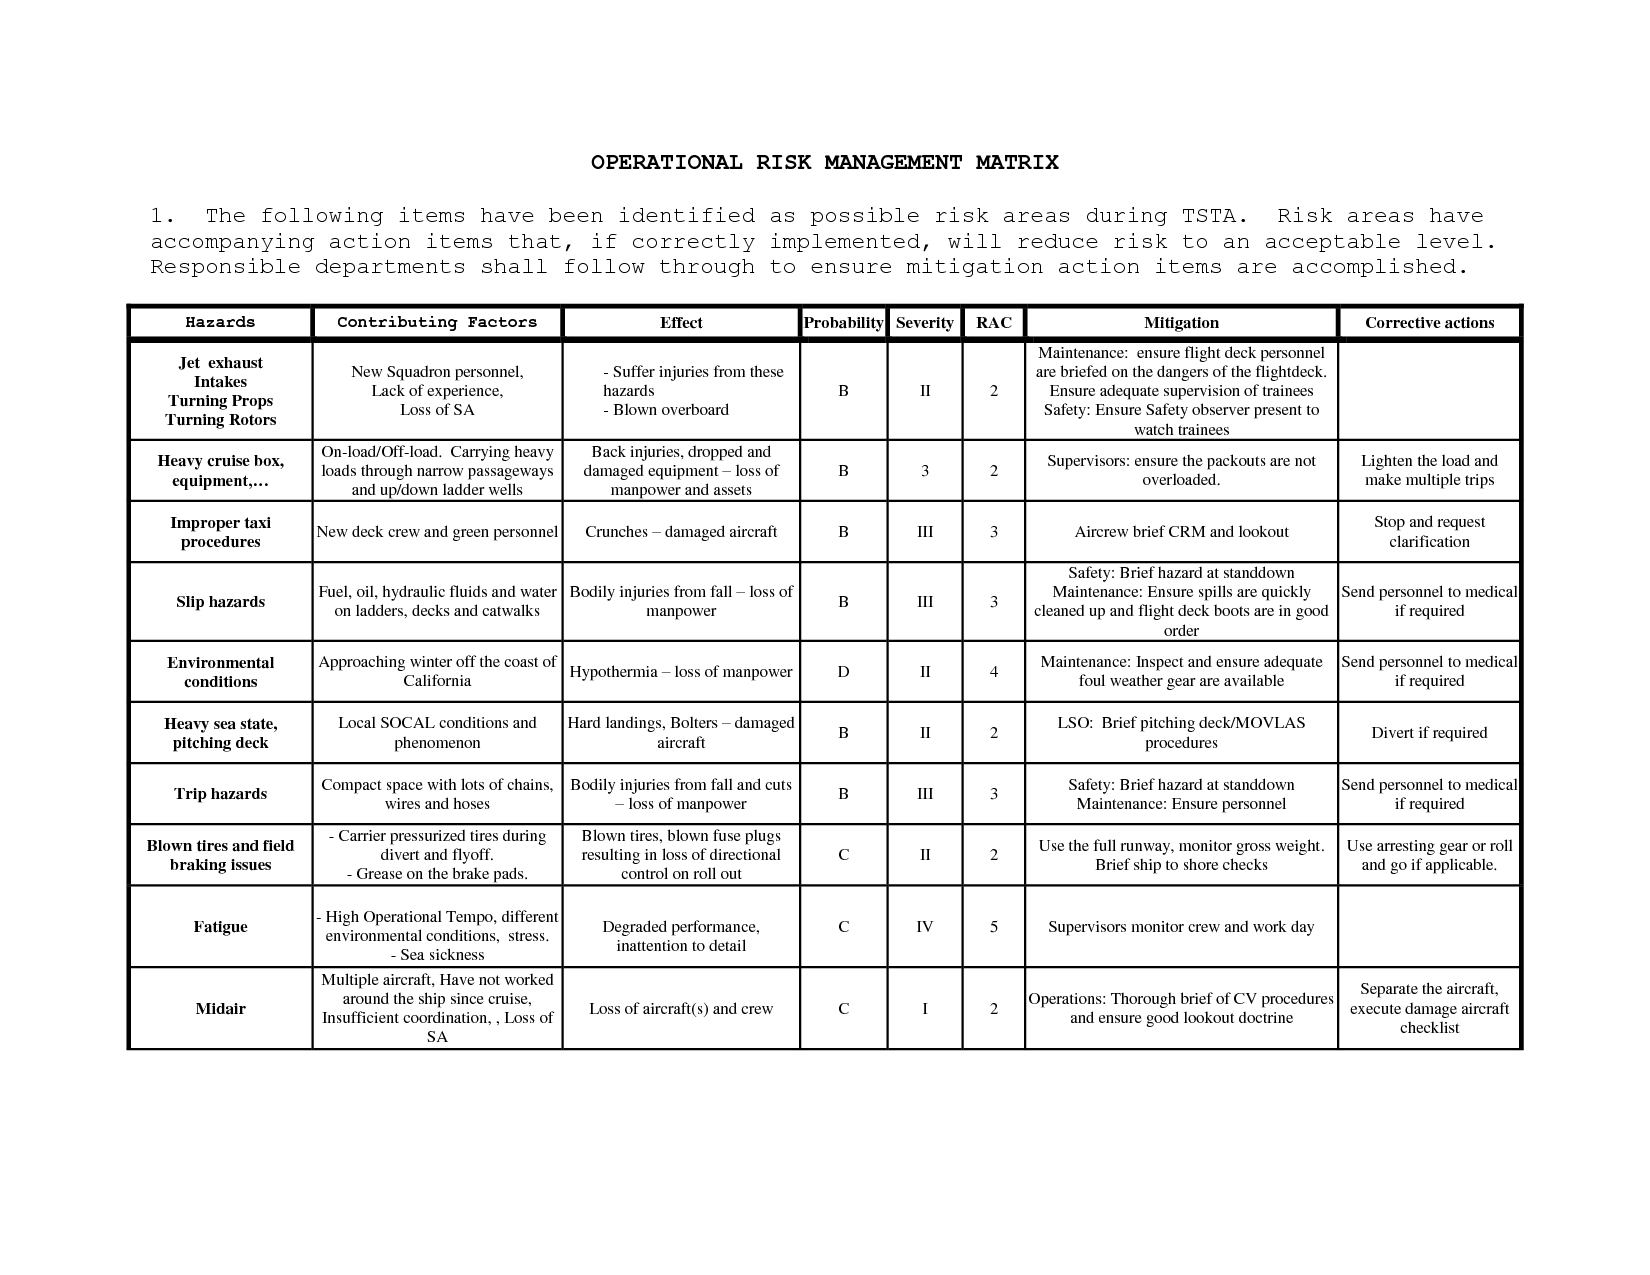 Operational Risk Assessment Worksheet Usmc